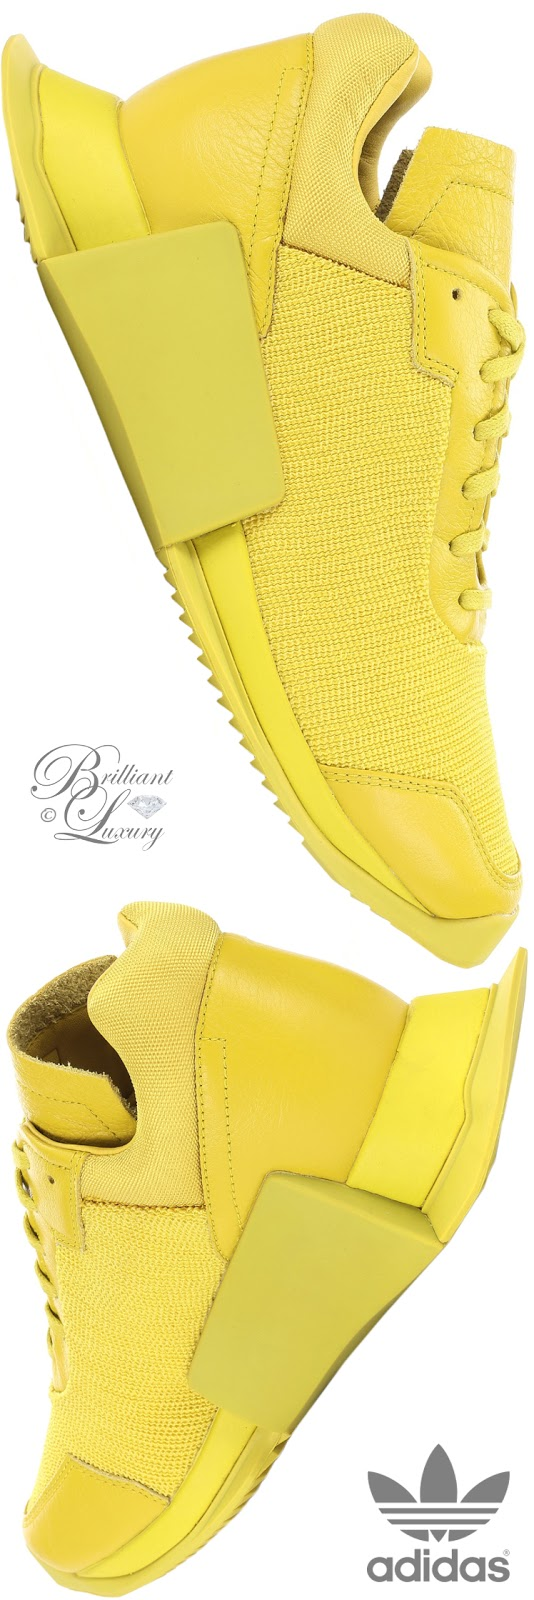 Brilliant Luxury ♦ Adidas by Rick Owens RO Level Runner Low II yellow sneakers